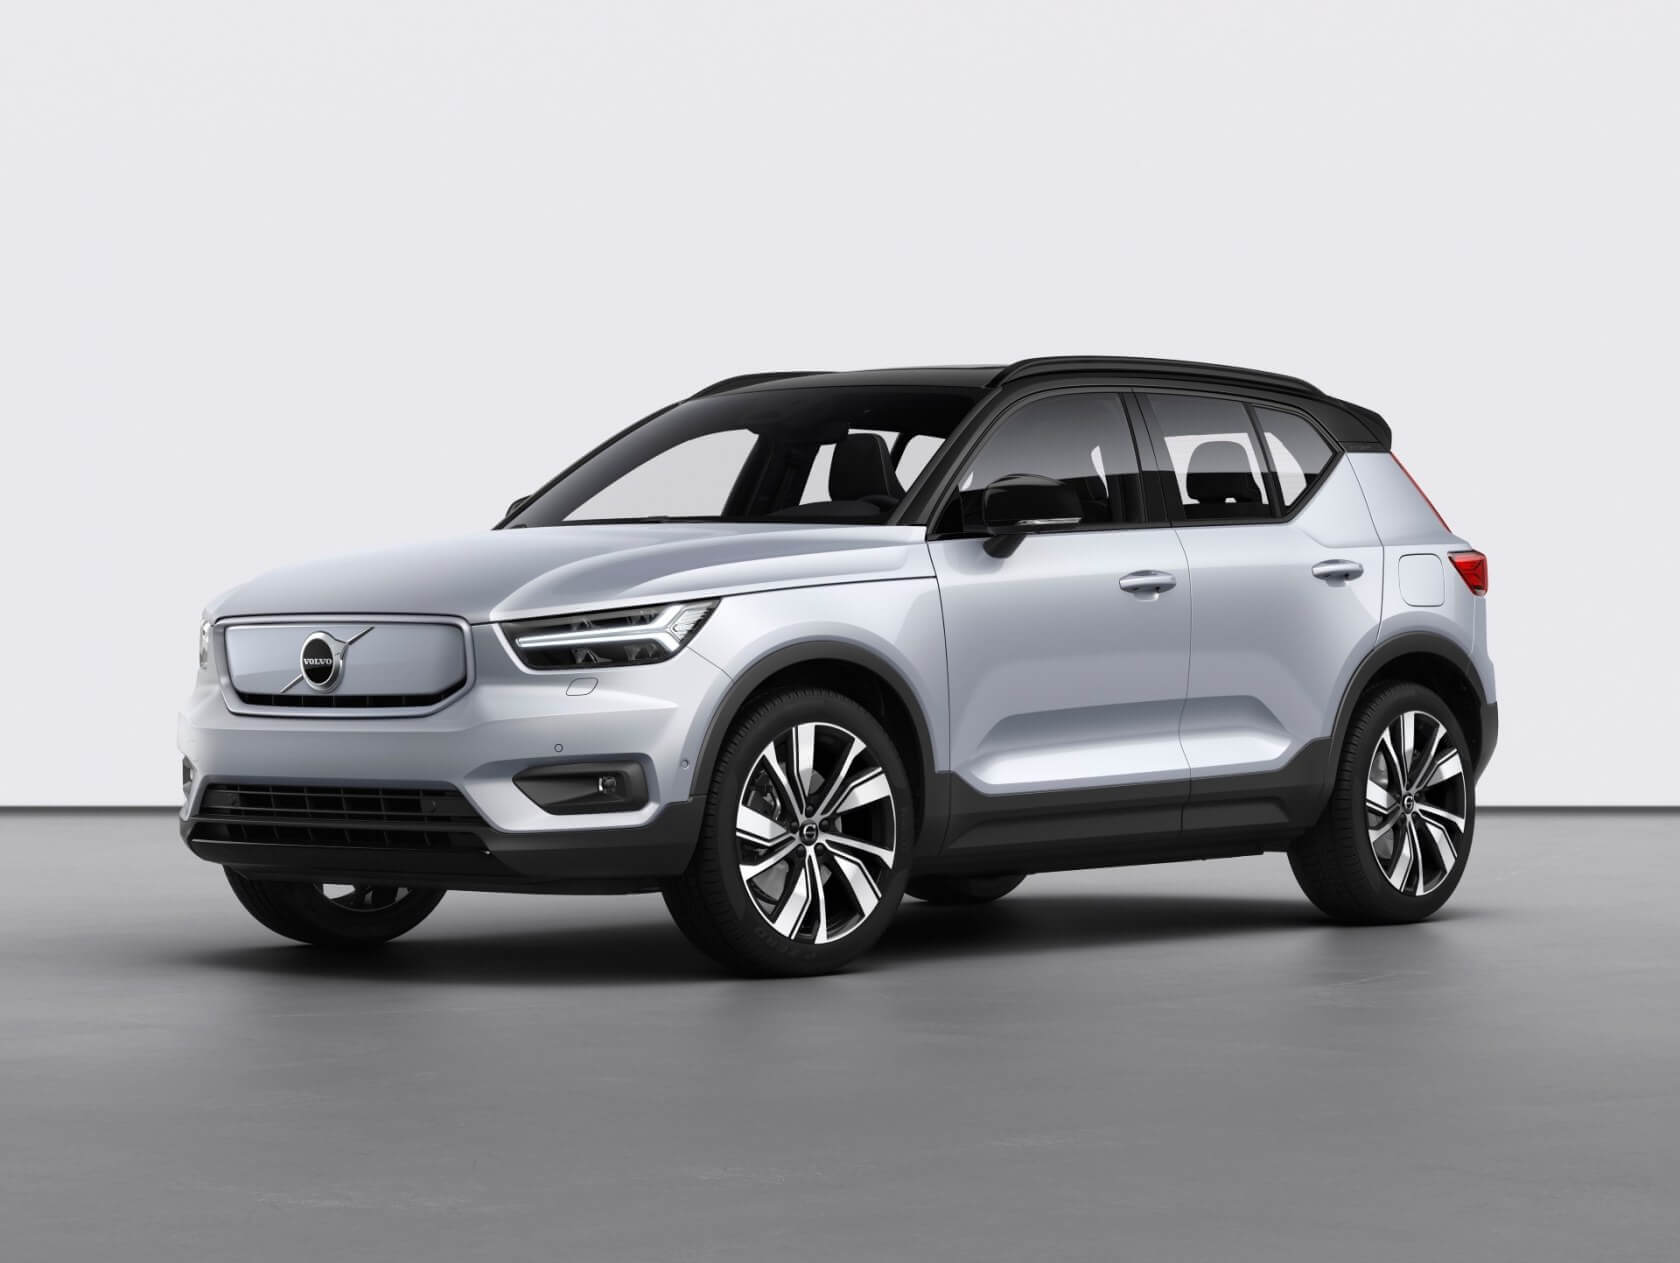 Volvo reveals its first fully-electric SUV, says every new car model will be 'electrified'